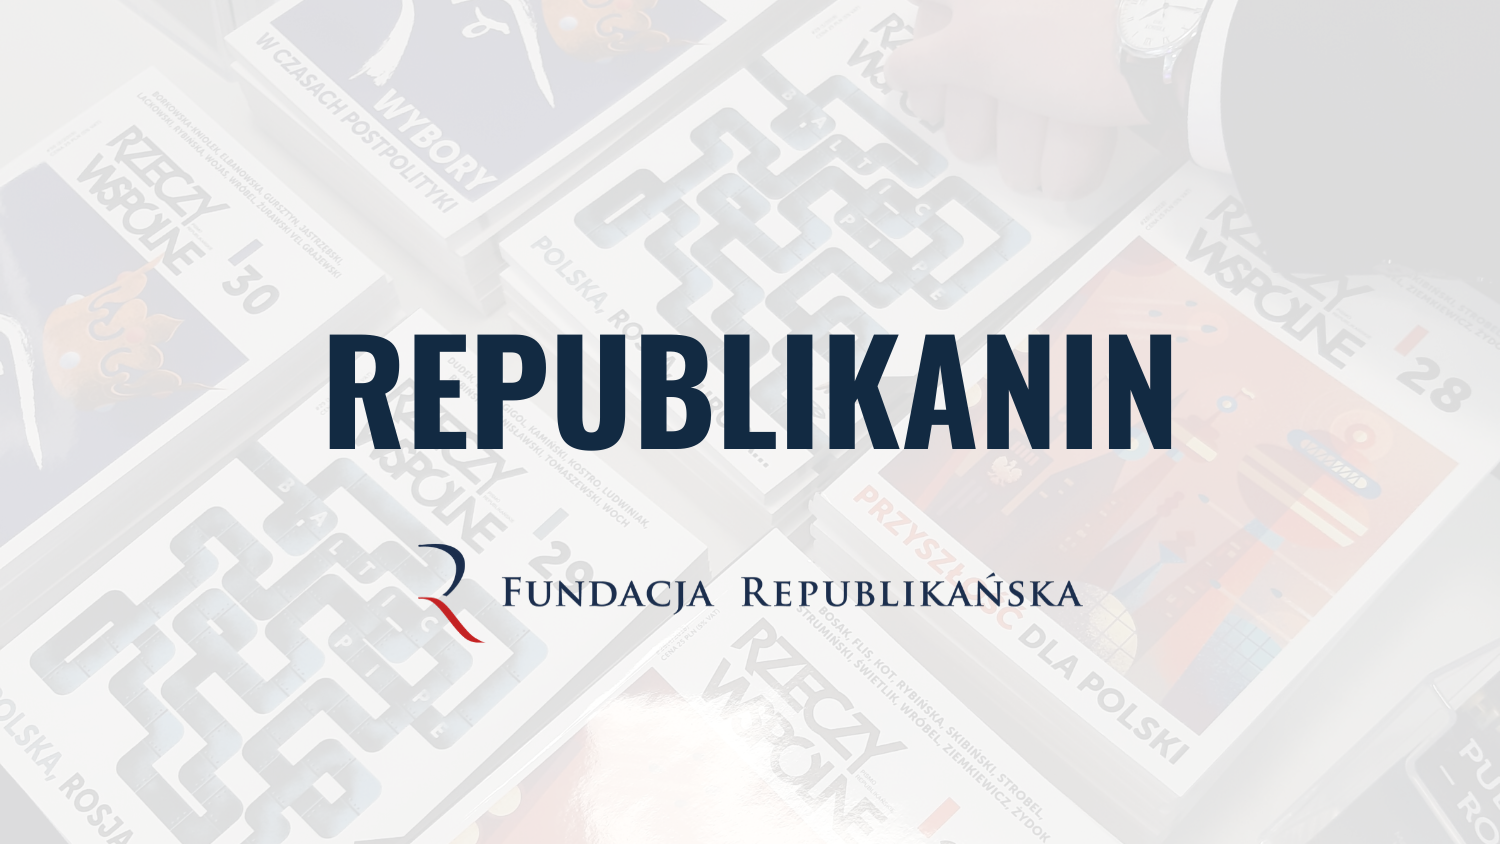 Republikanin